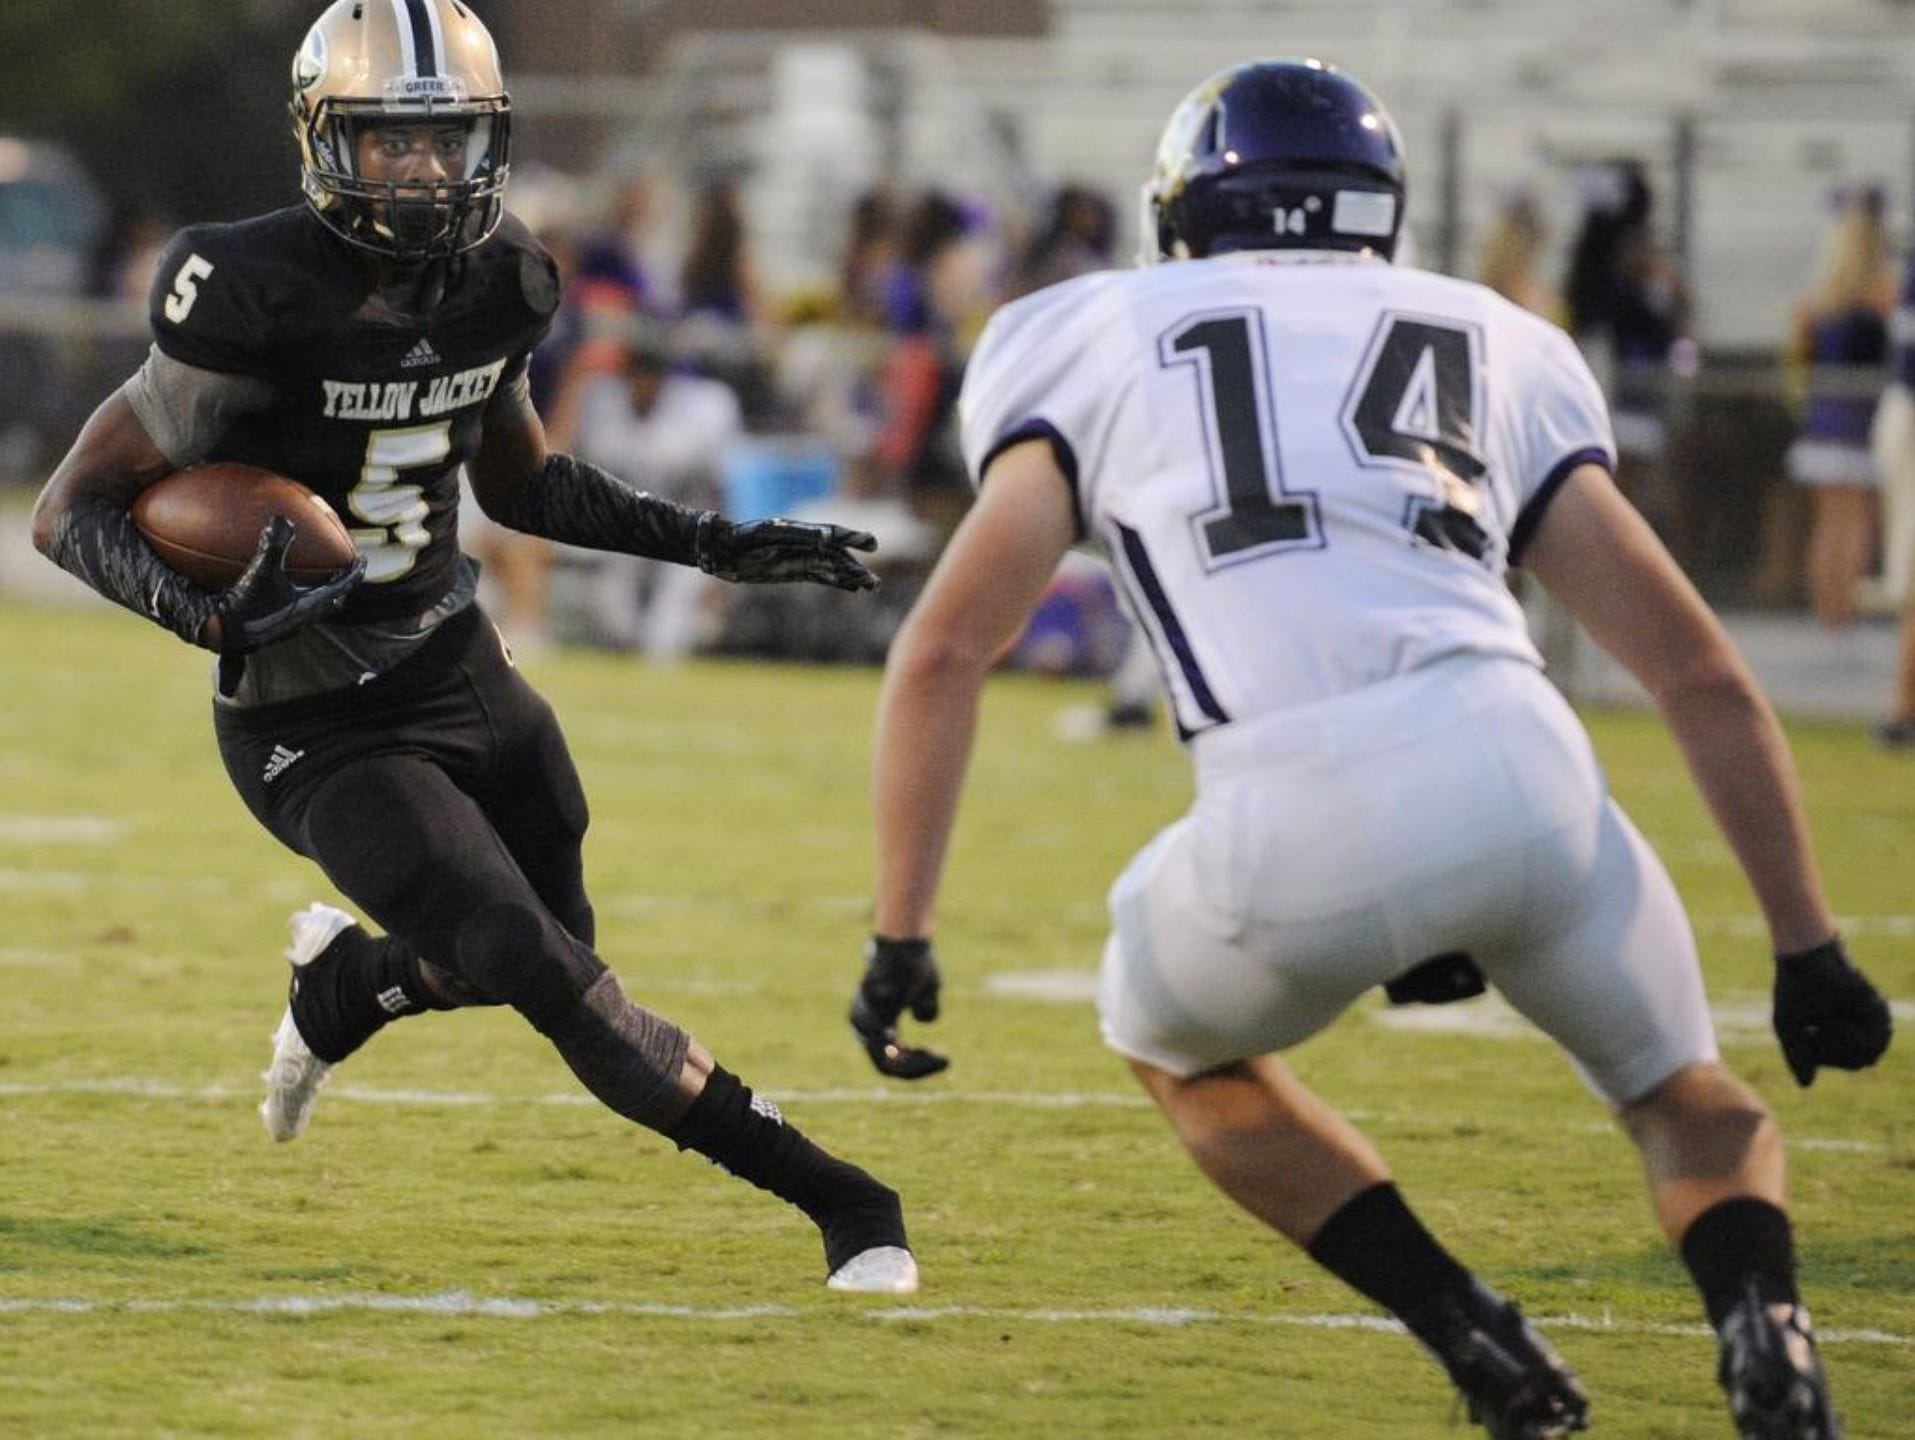 Greer High senior Troy Pride (5) sizes up an Emerald defender in the open field during the Yellow Jackets' 39-20 victory at Dooley Field Sept. 18.